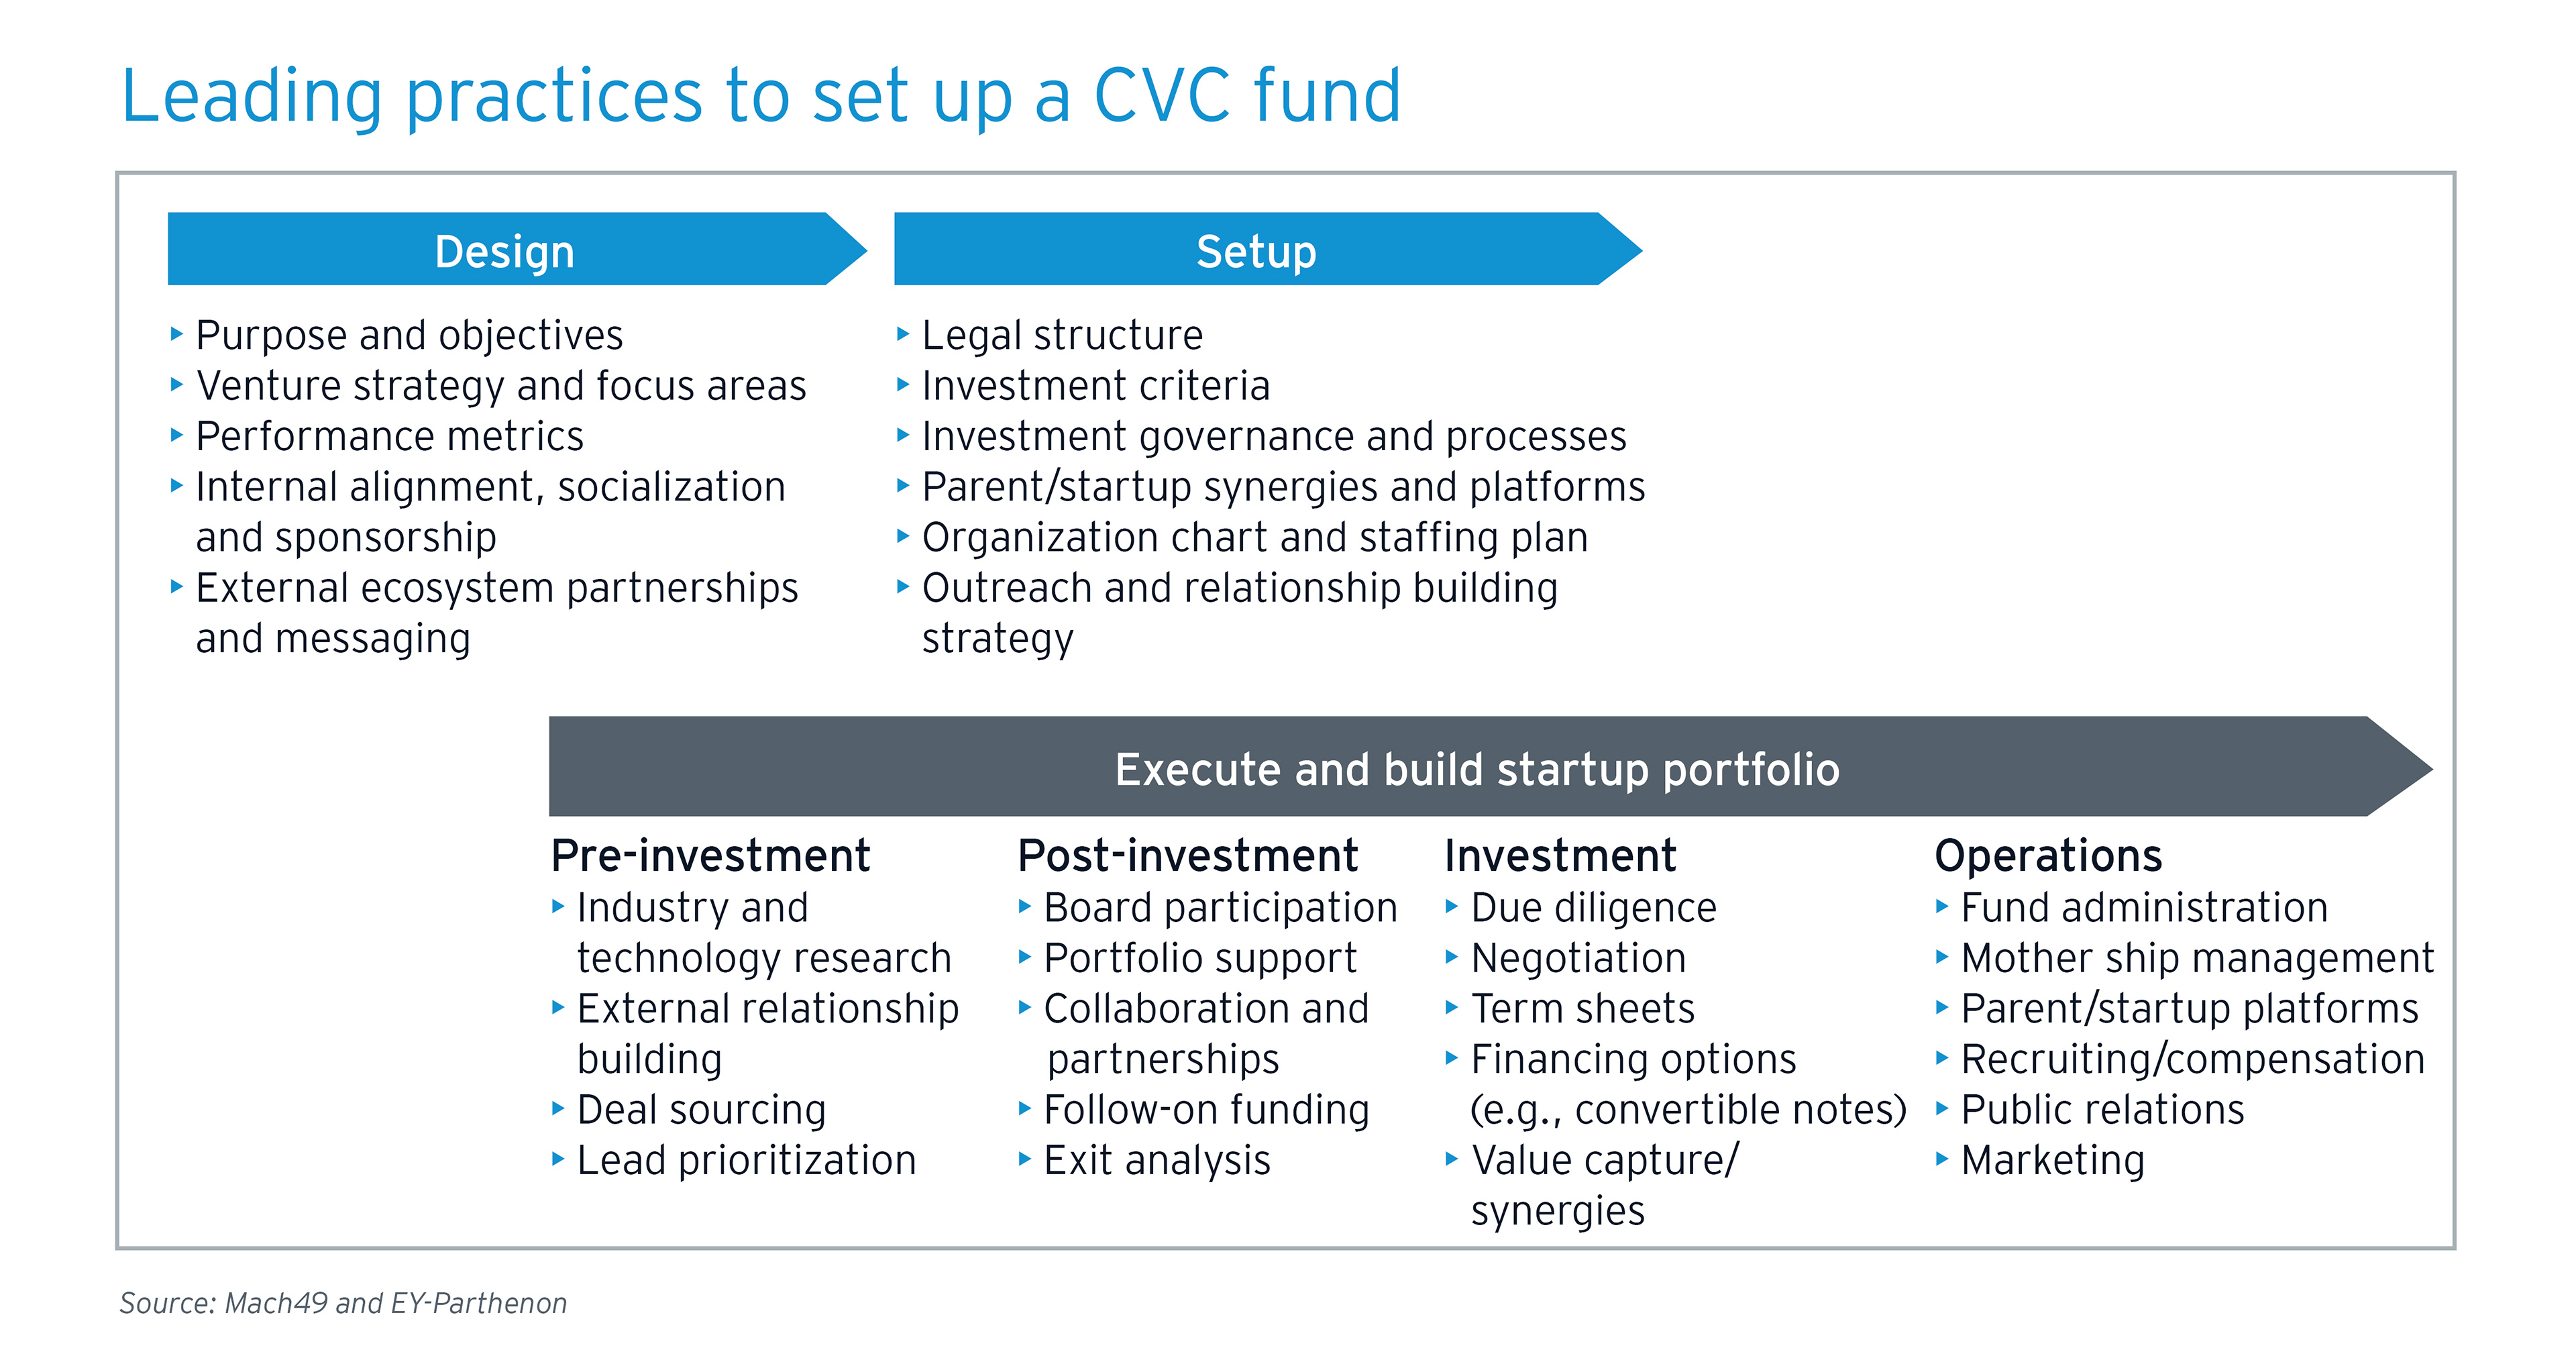 Leading practices to set up a CVC fund